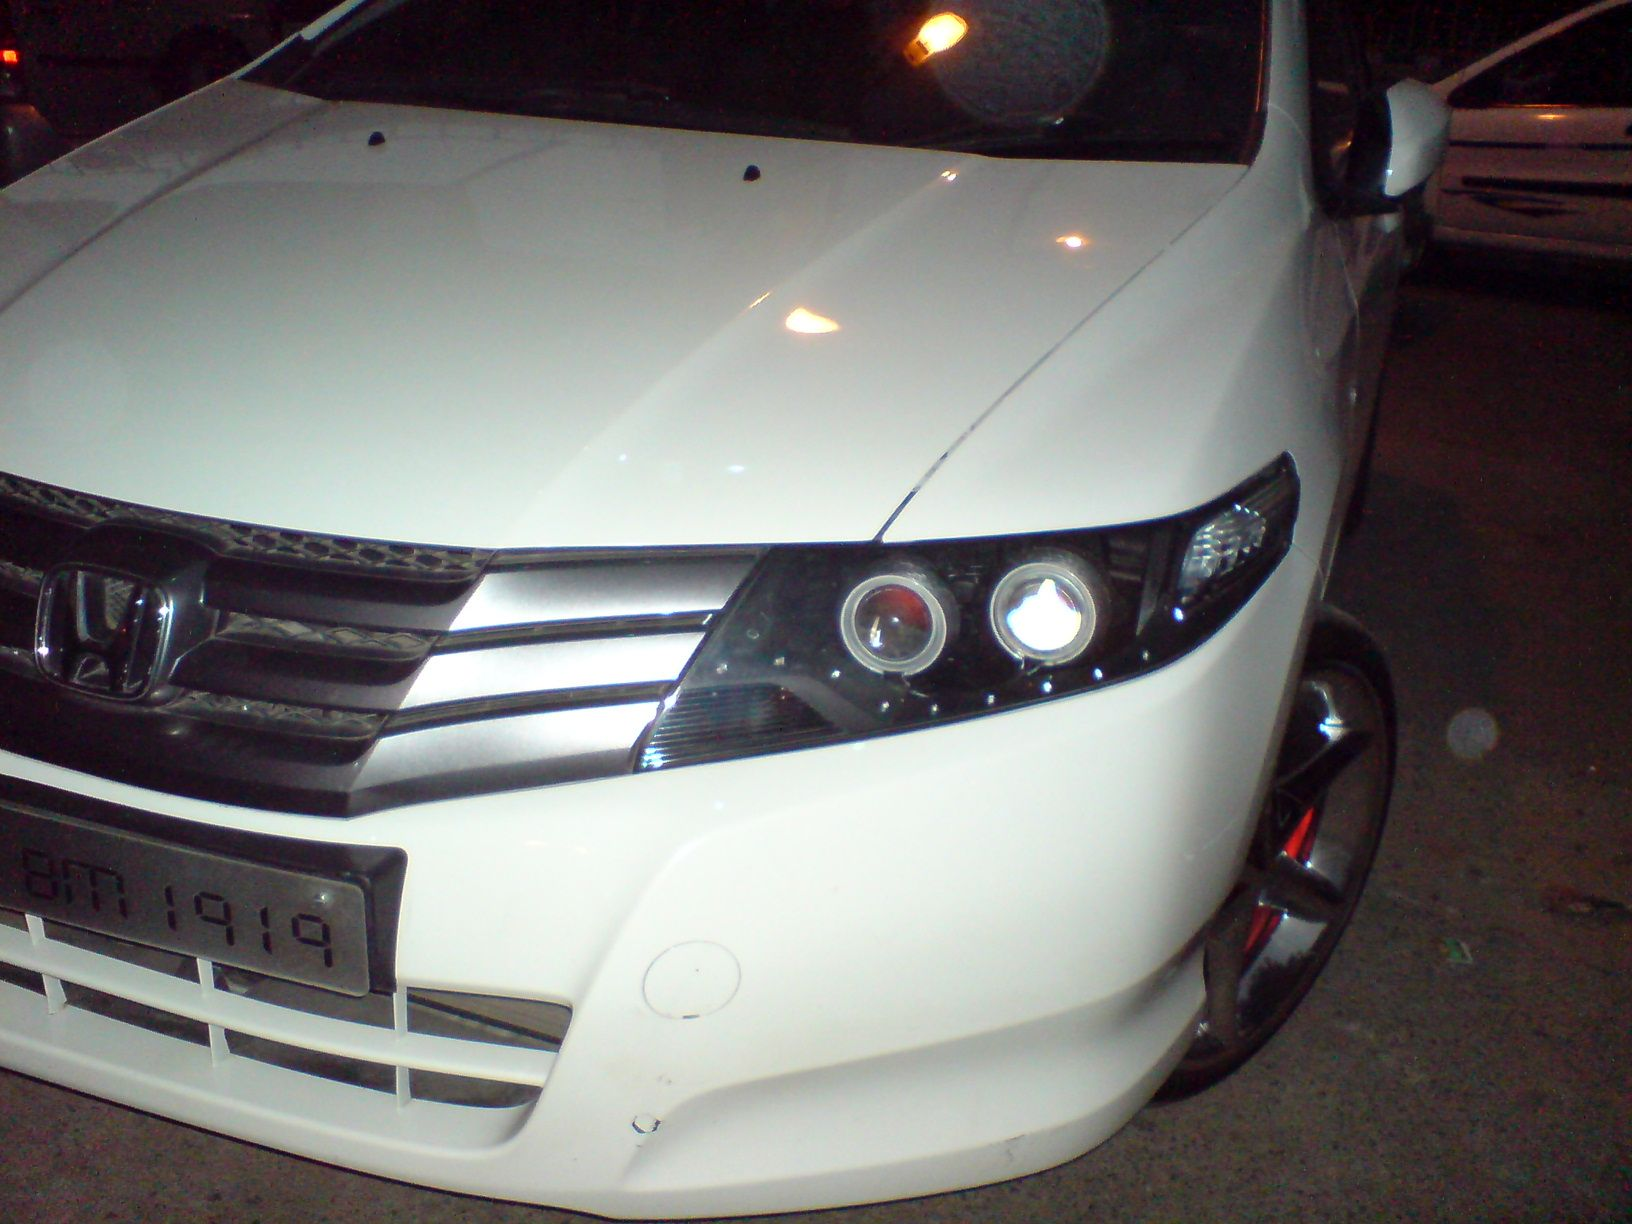 Honda City Ivtec Customised Projector Headlights With Projector Angel Eye And Leds Projector Headlights Honda City Headlights